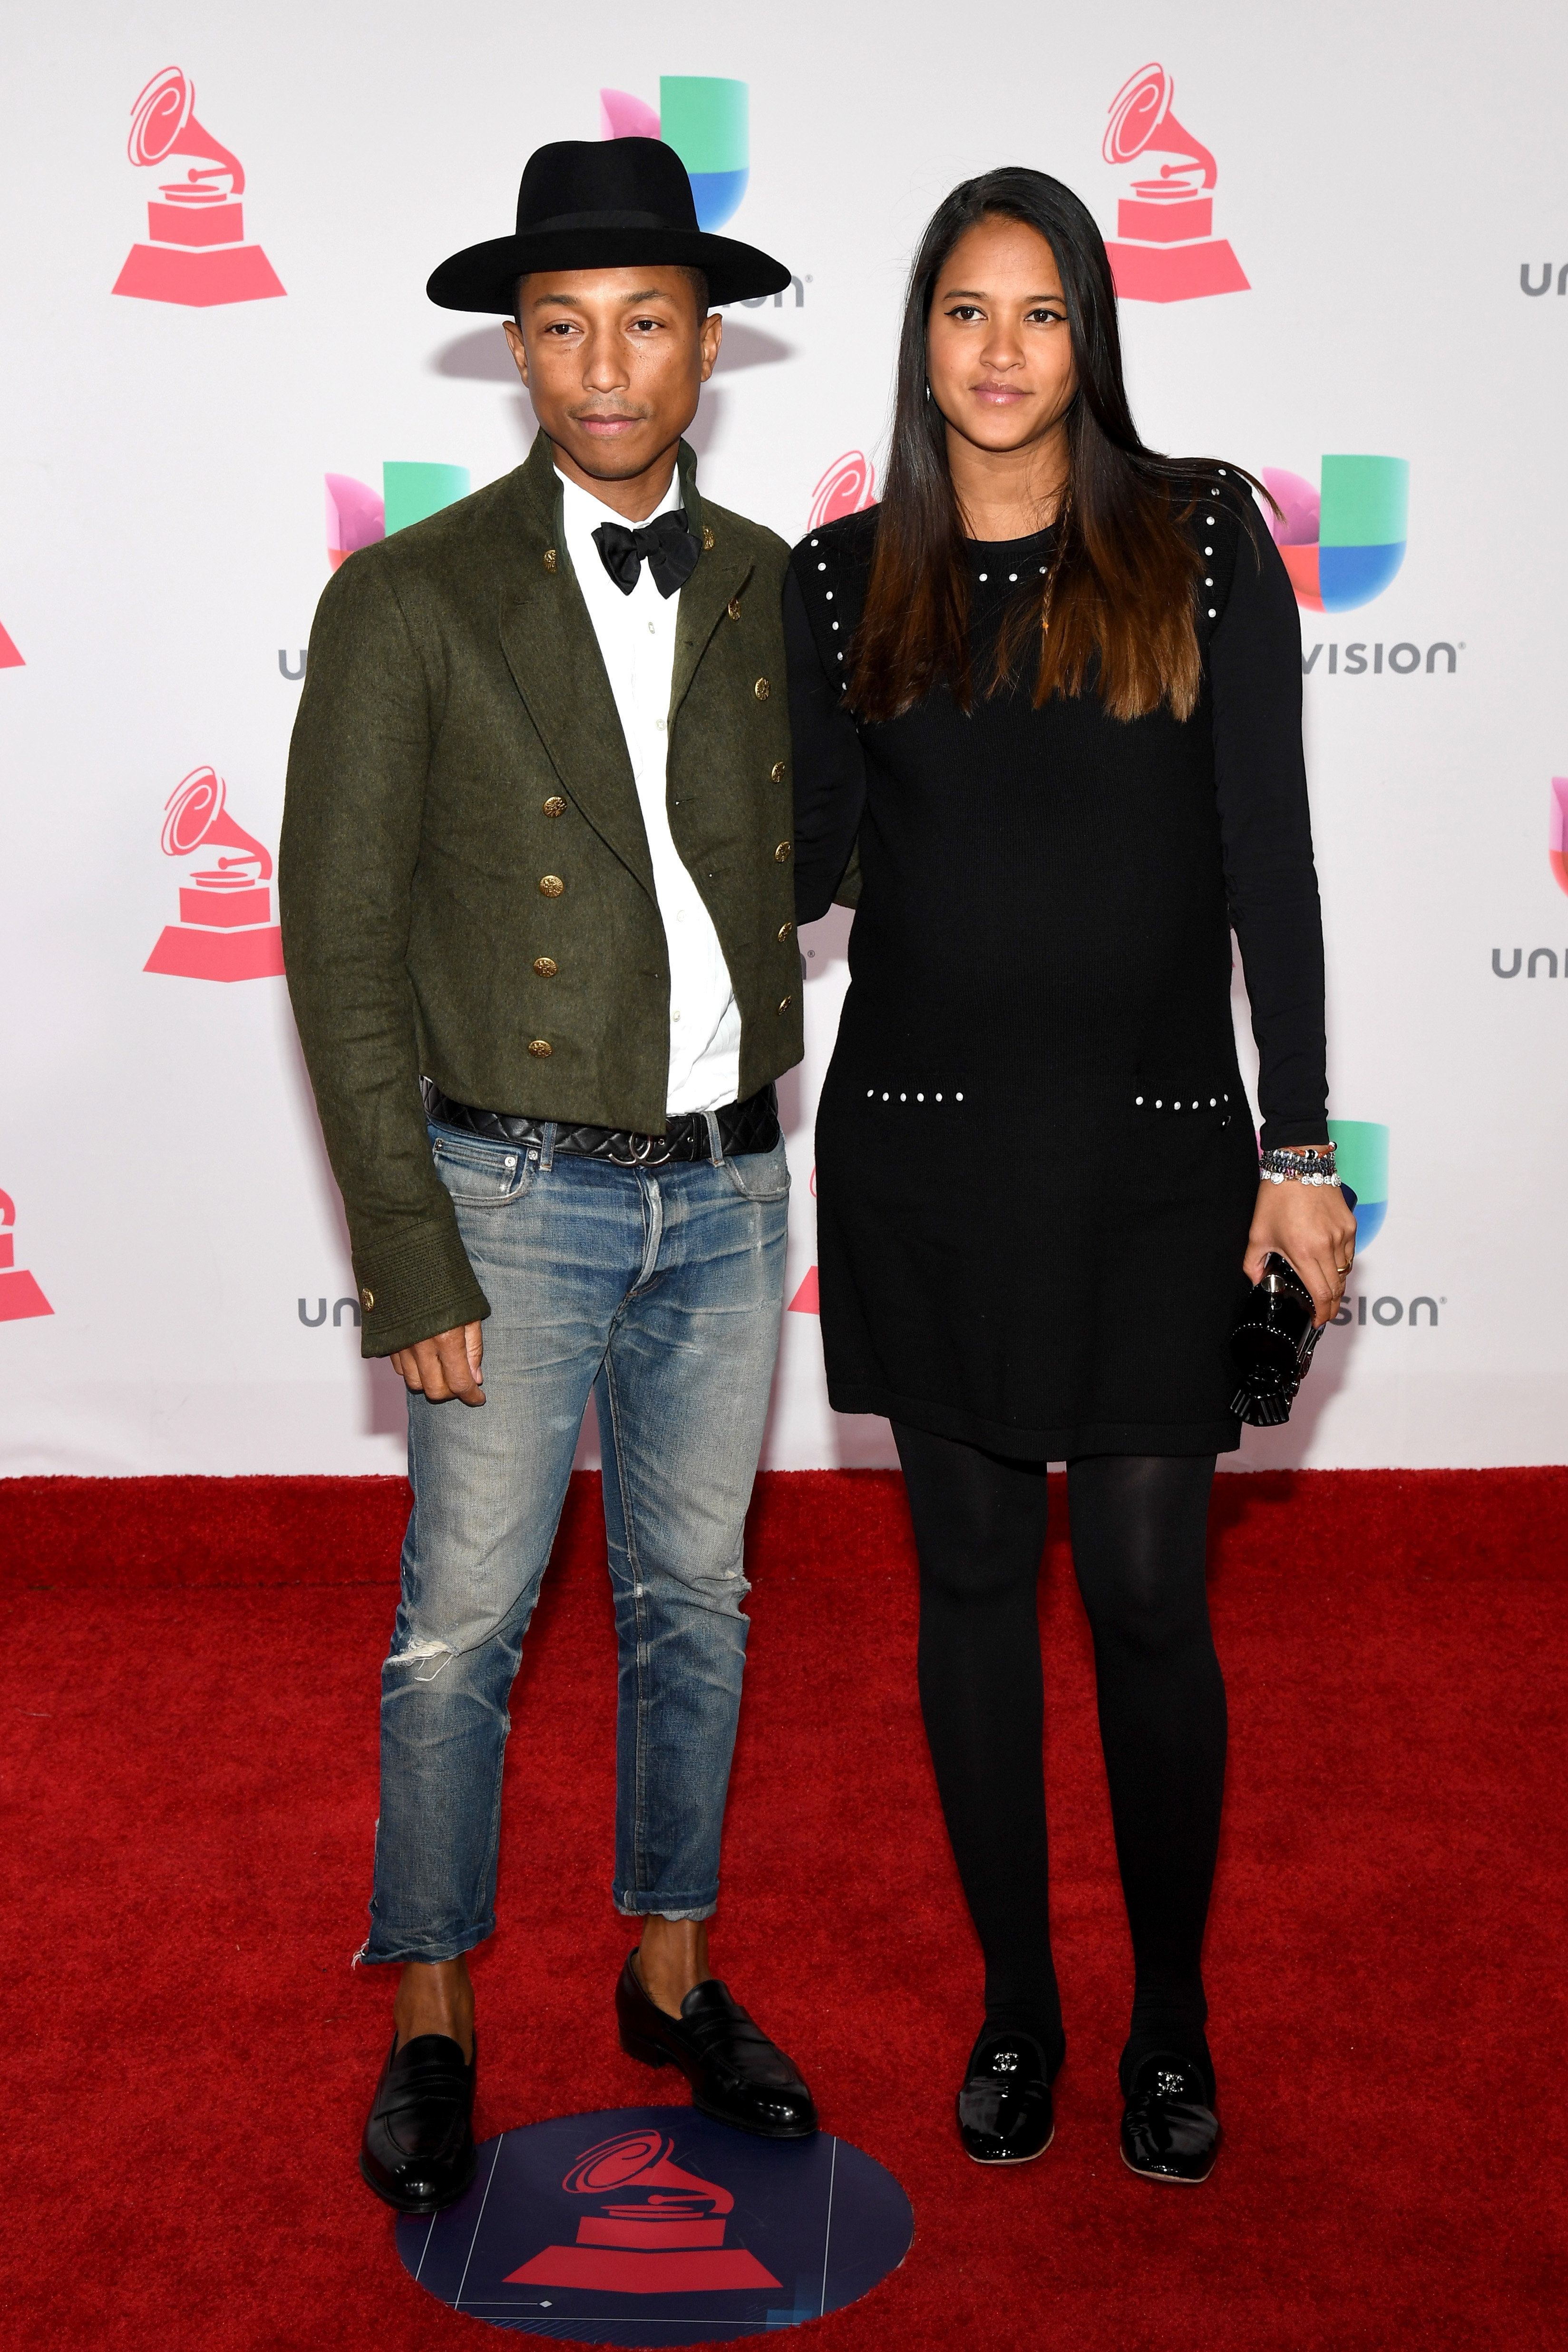 LAS VEGAS, NV - NOVEMBER 17:  Pharrell Williams (L) and Helen Lasichanh attend The 17th Annual Latin Grammy Awards at T-Mobile Arena on November 17, 2016 in Las Vegas, Nevada.  (Photo by Ethan Miller/Getty Images )